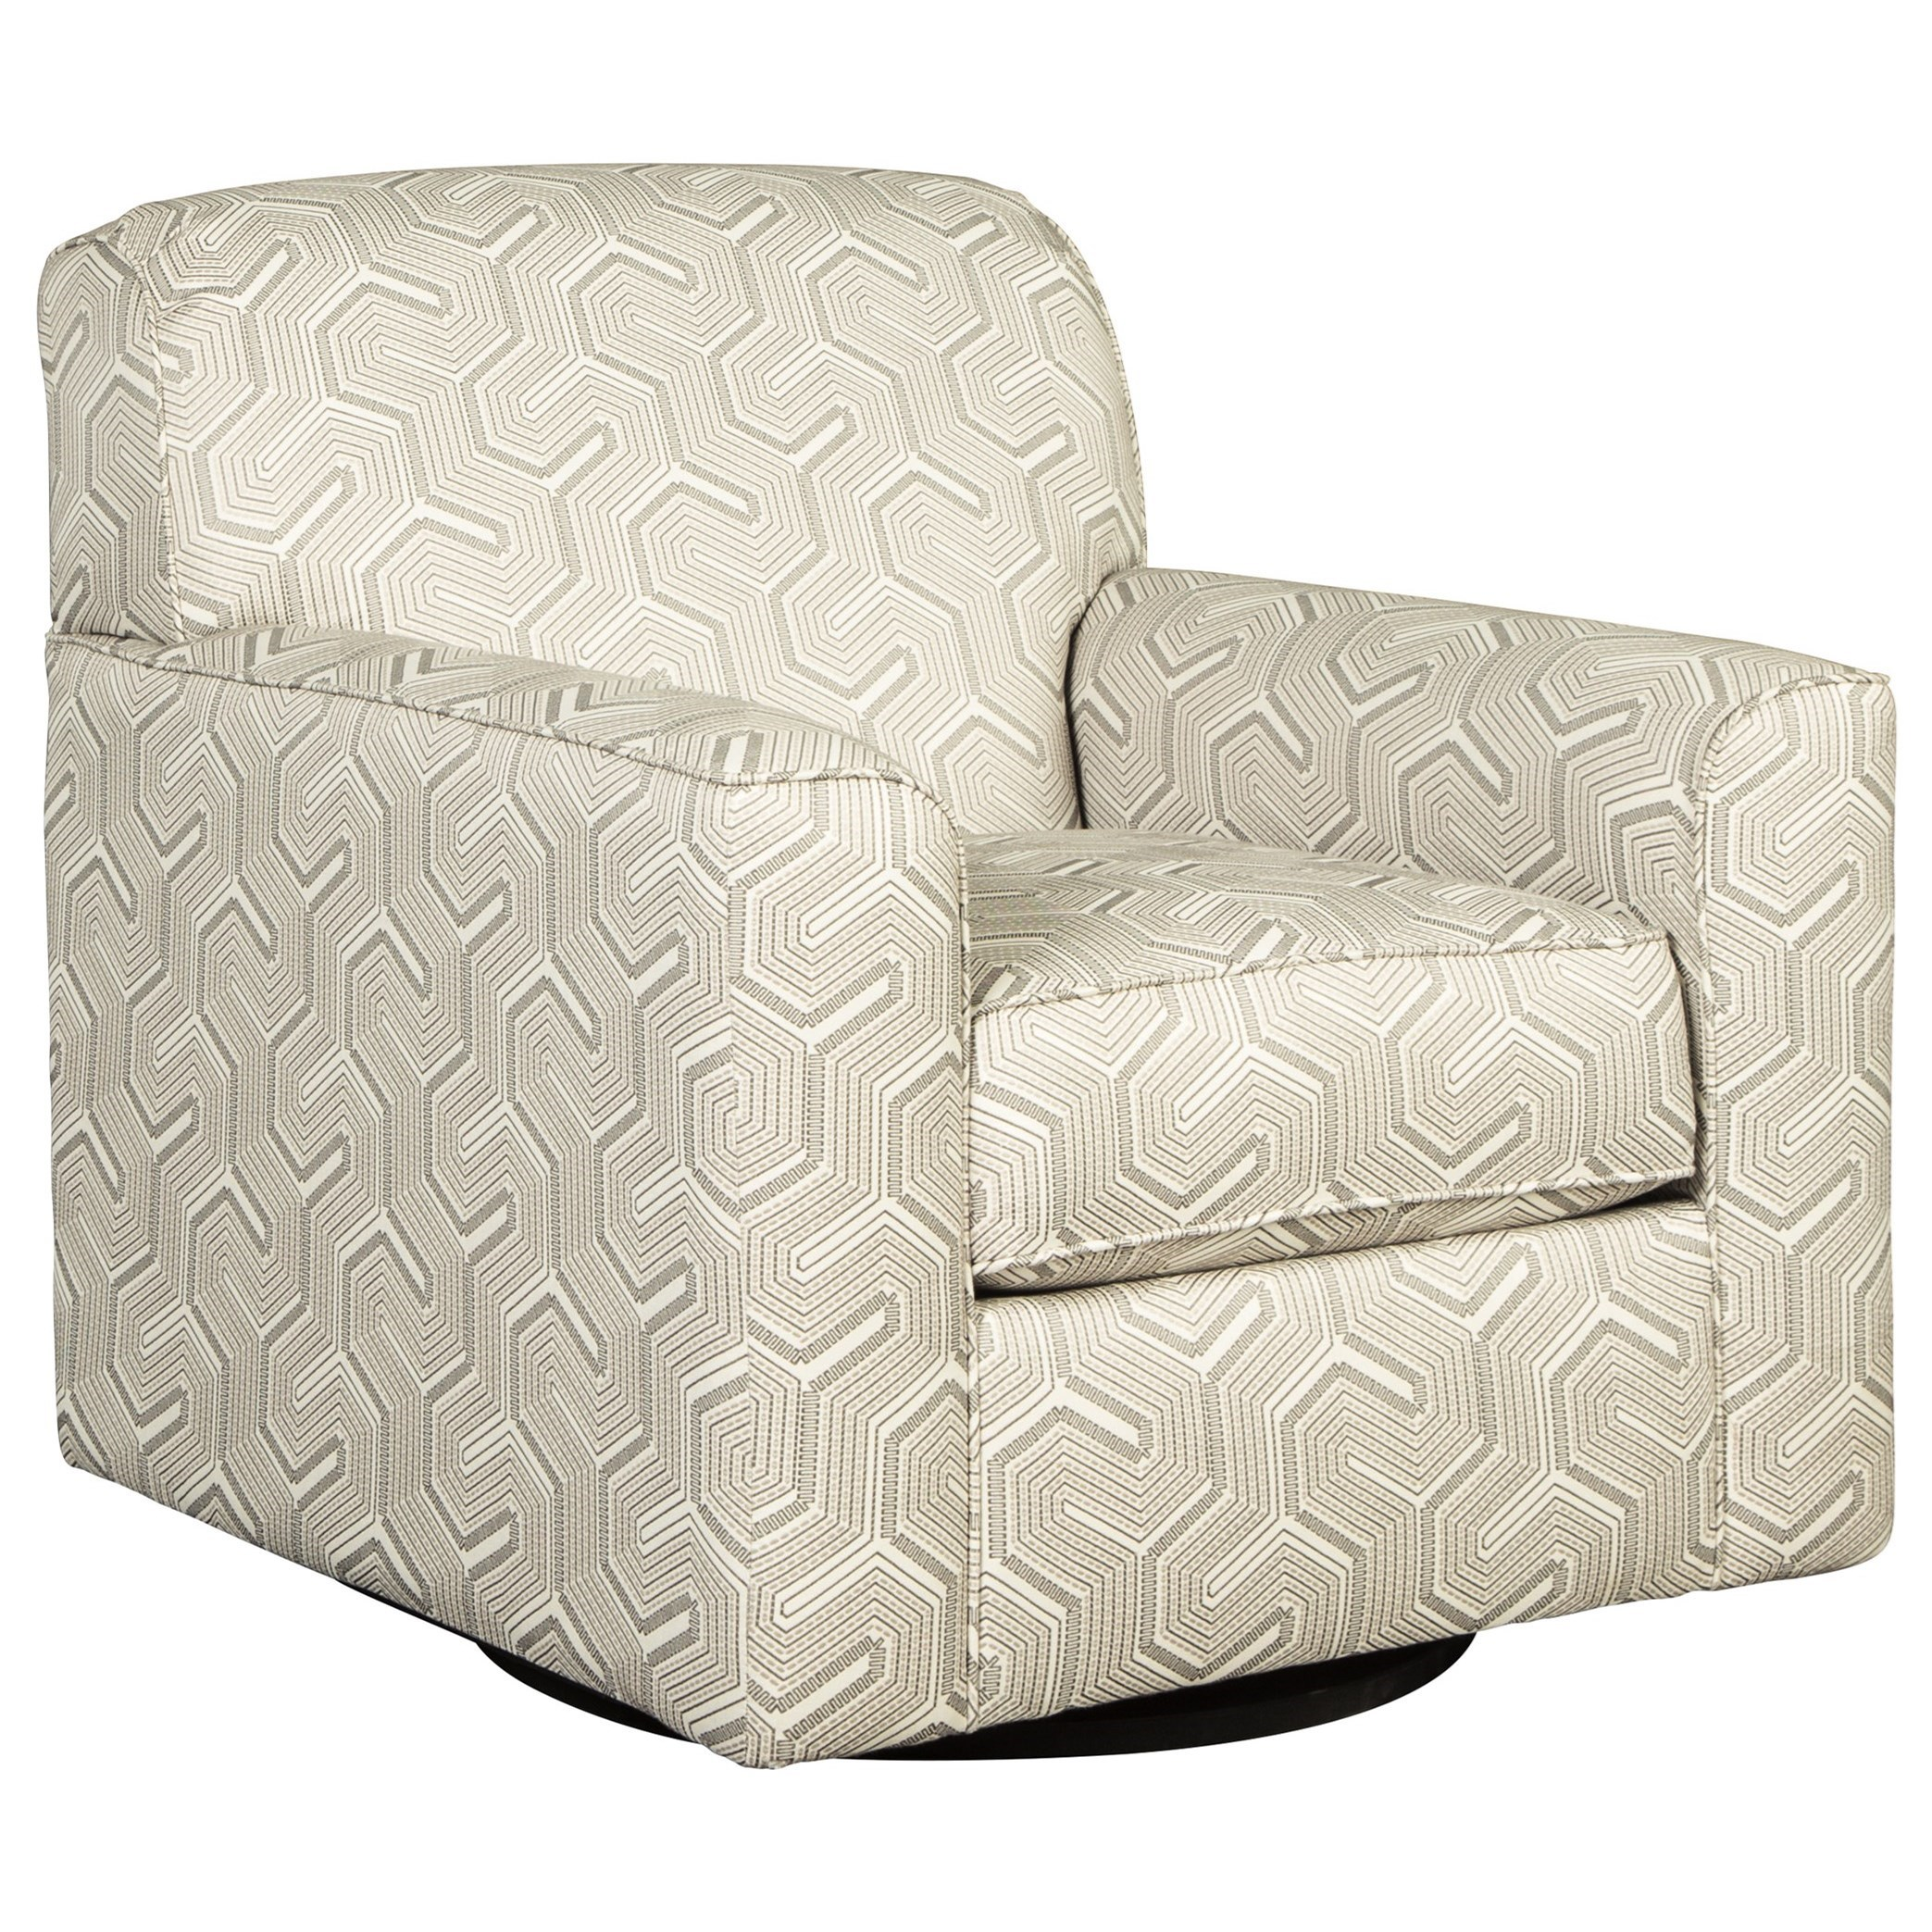 Benchcraft Daylon Swivel Accent Chair - Item Number: 4230444